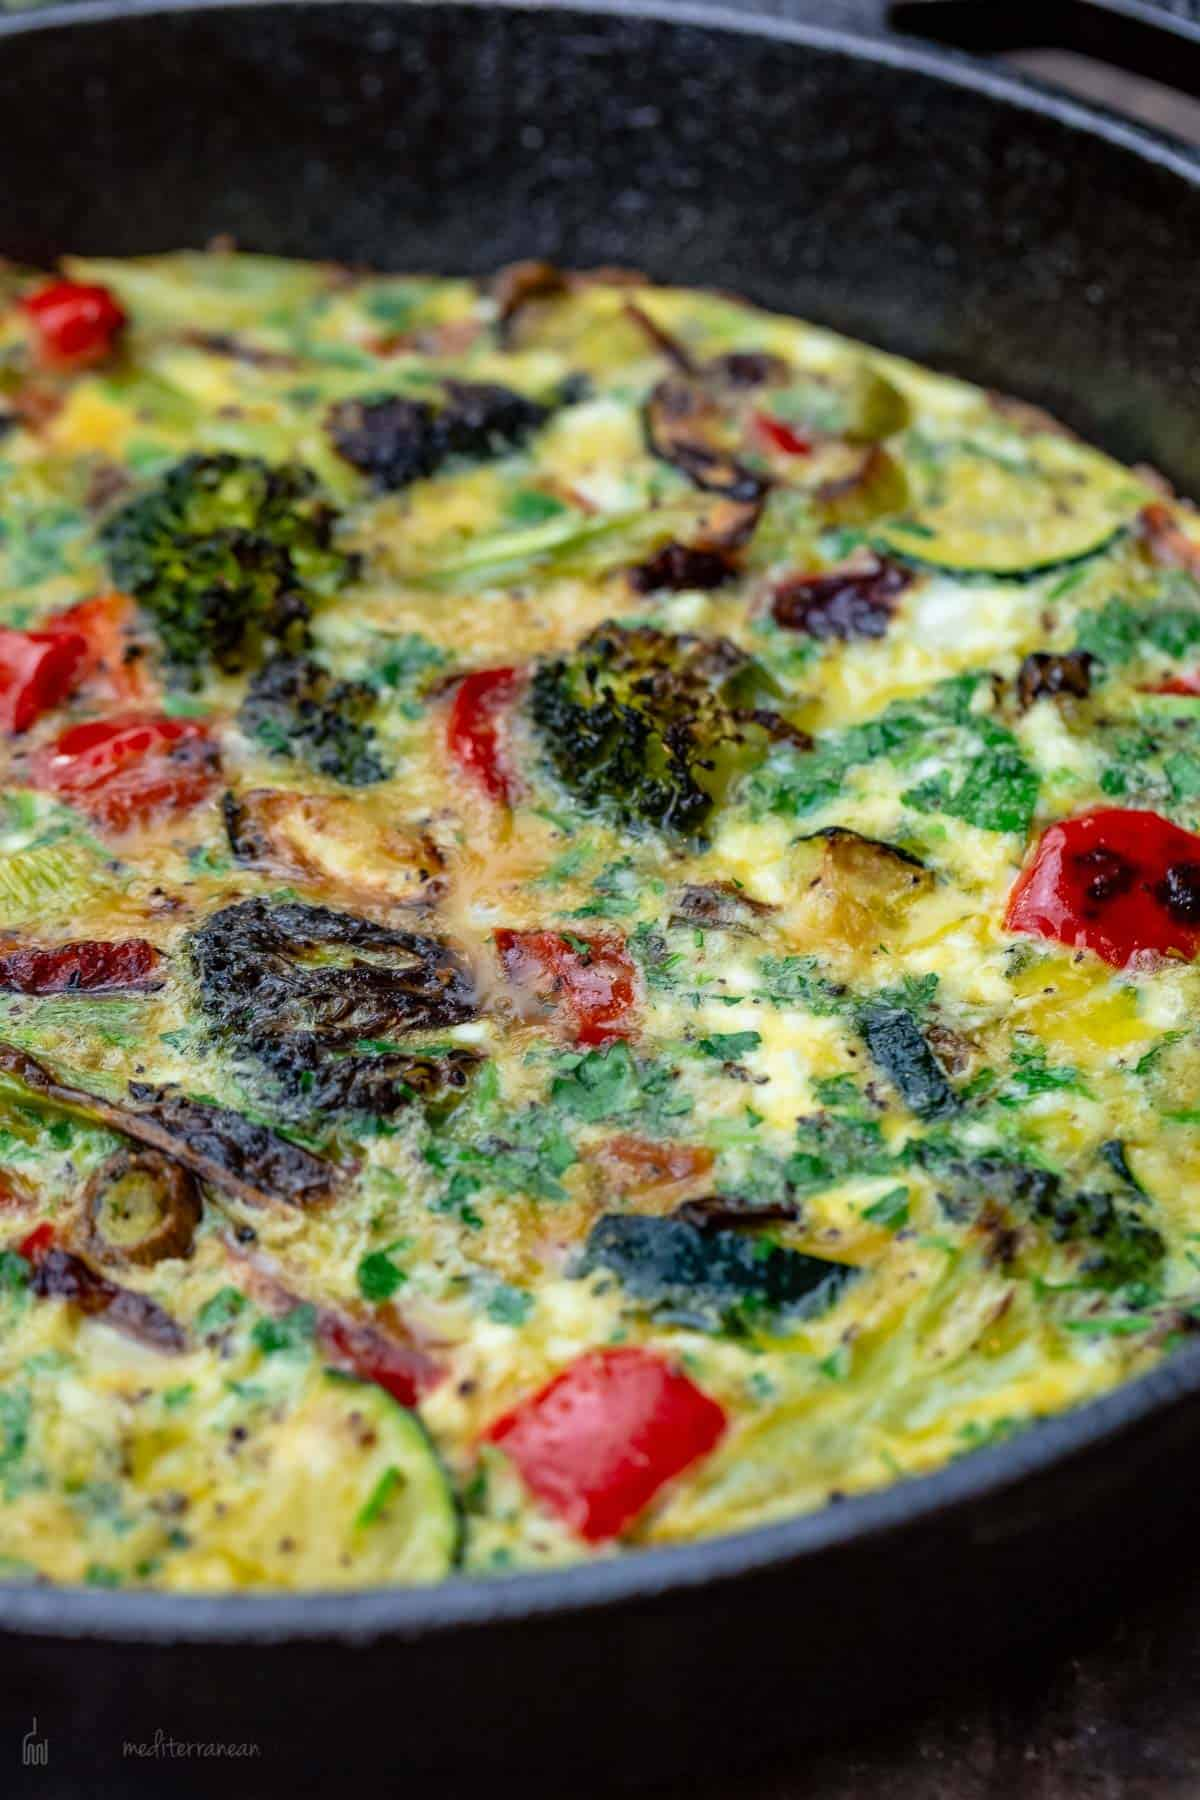 A Close-Up Shot of a Vegetable Frittata in a Cast-Iron Pan